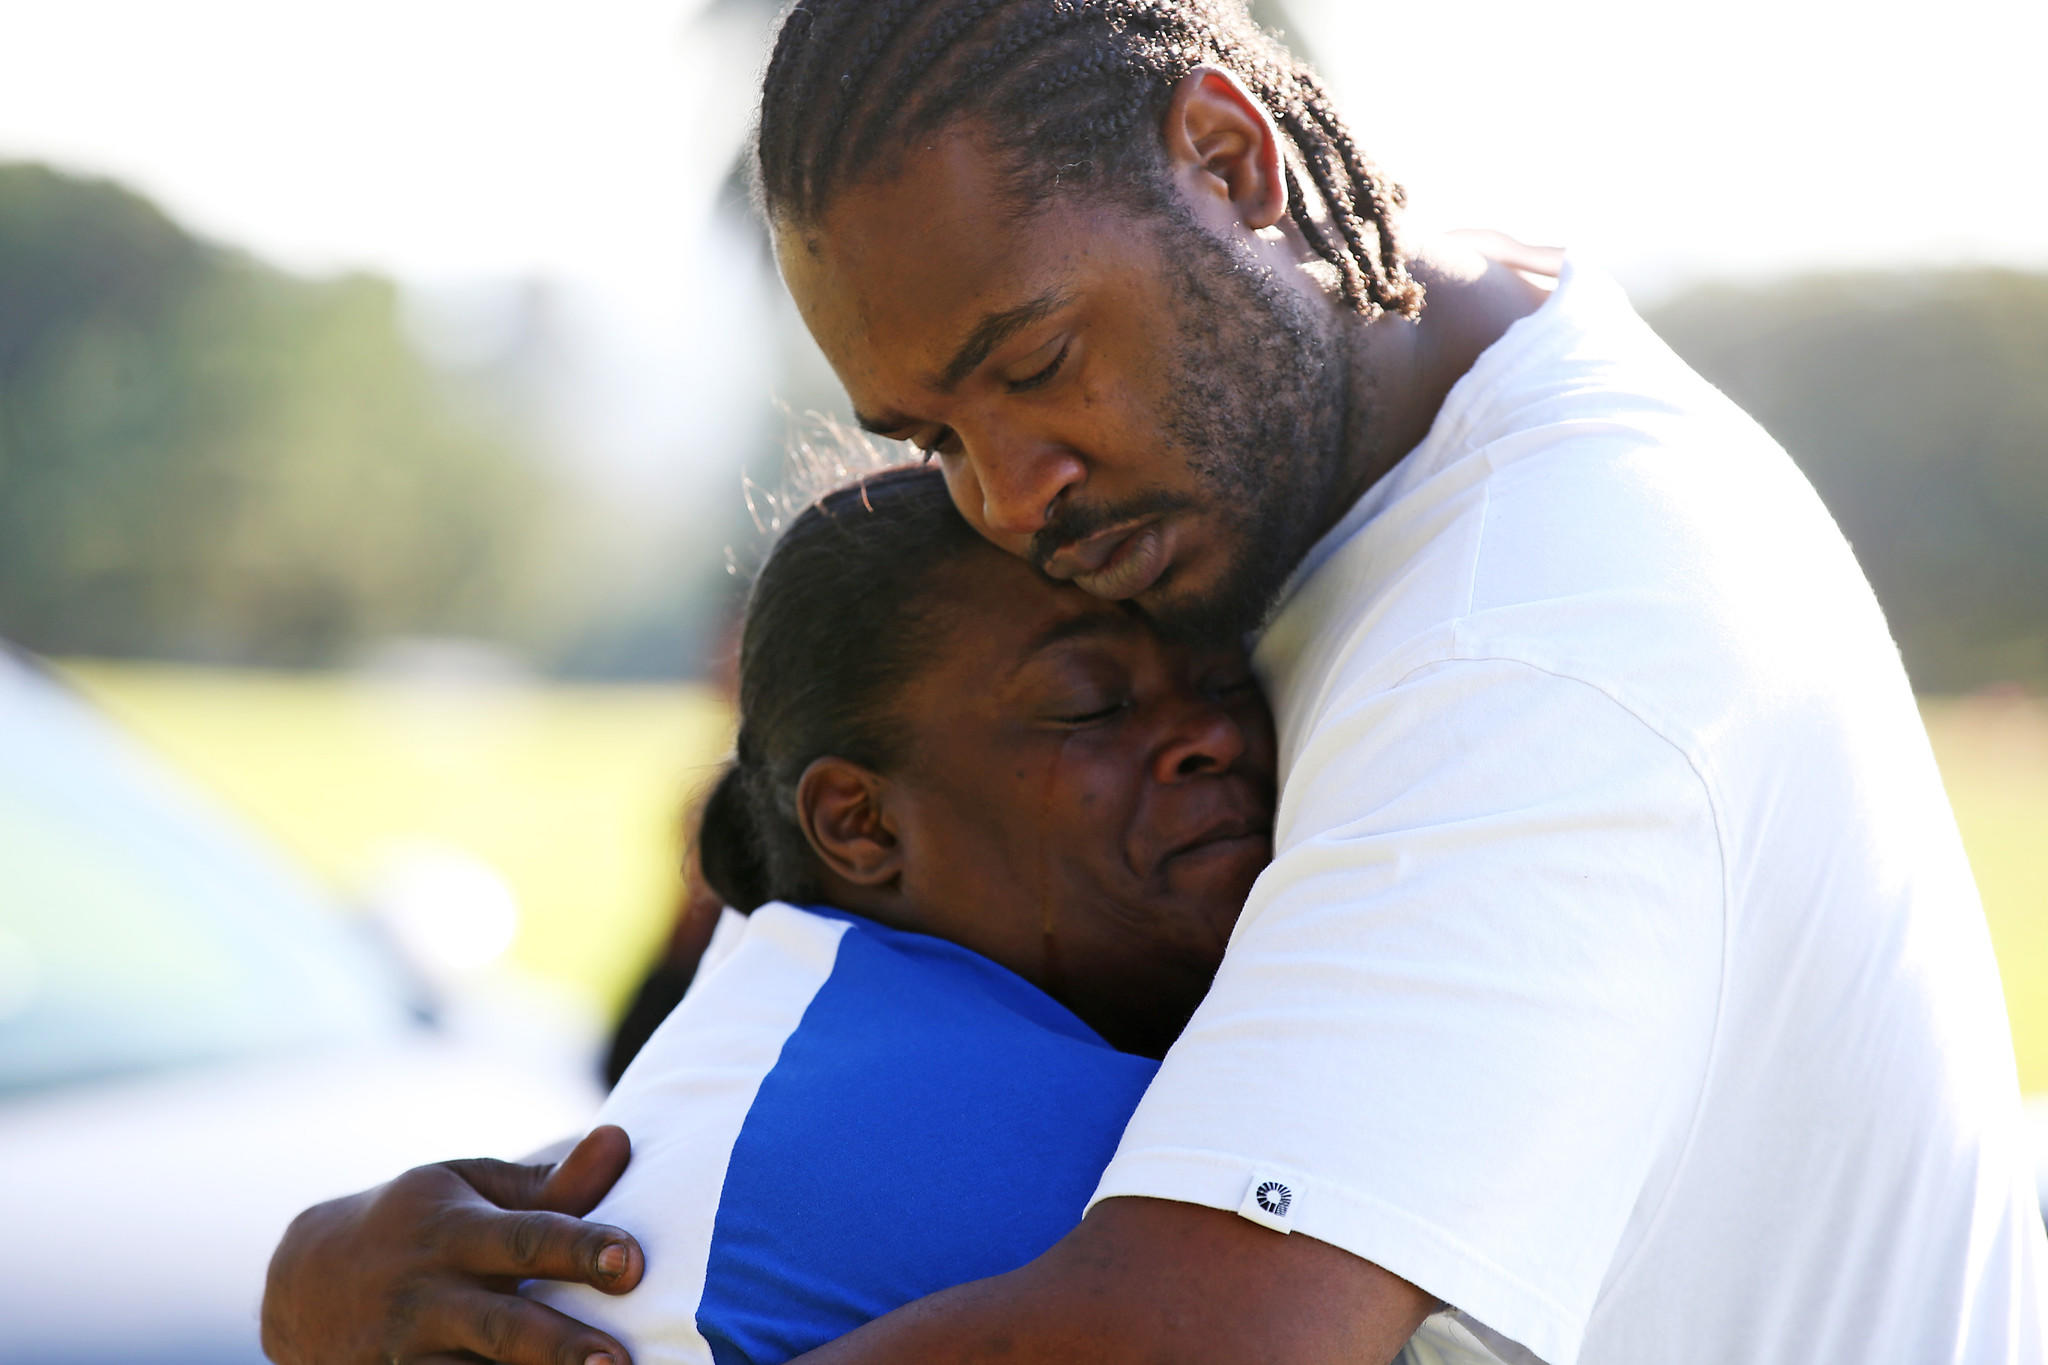 Barbara Pritchett-Hughes comforted by her son DJ Harris